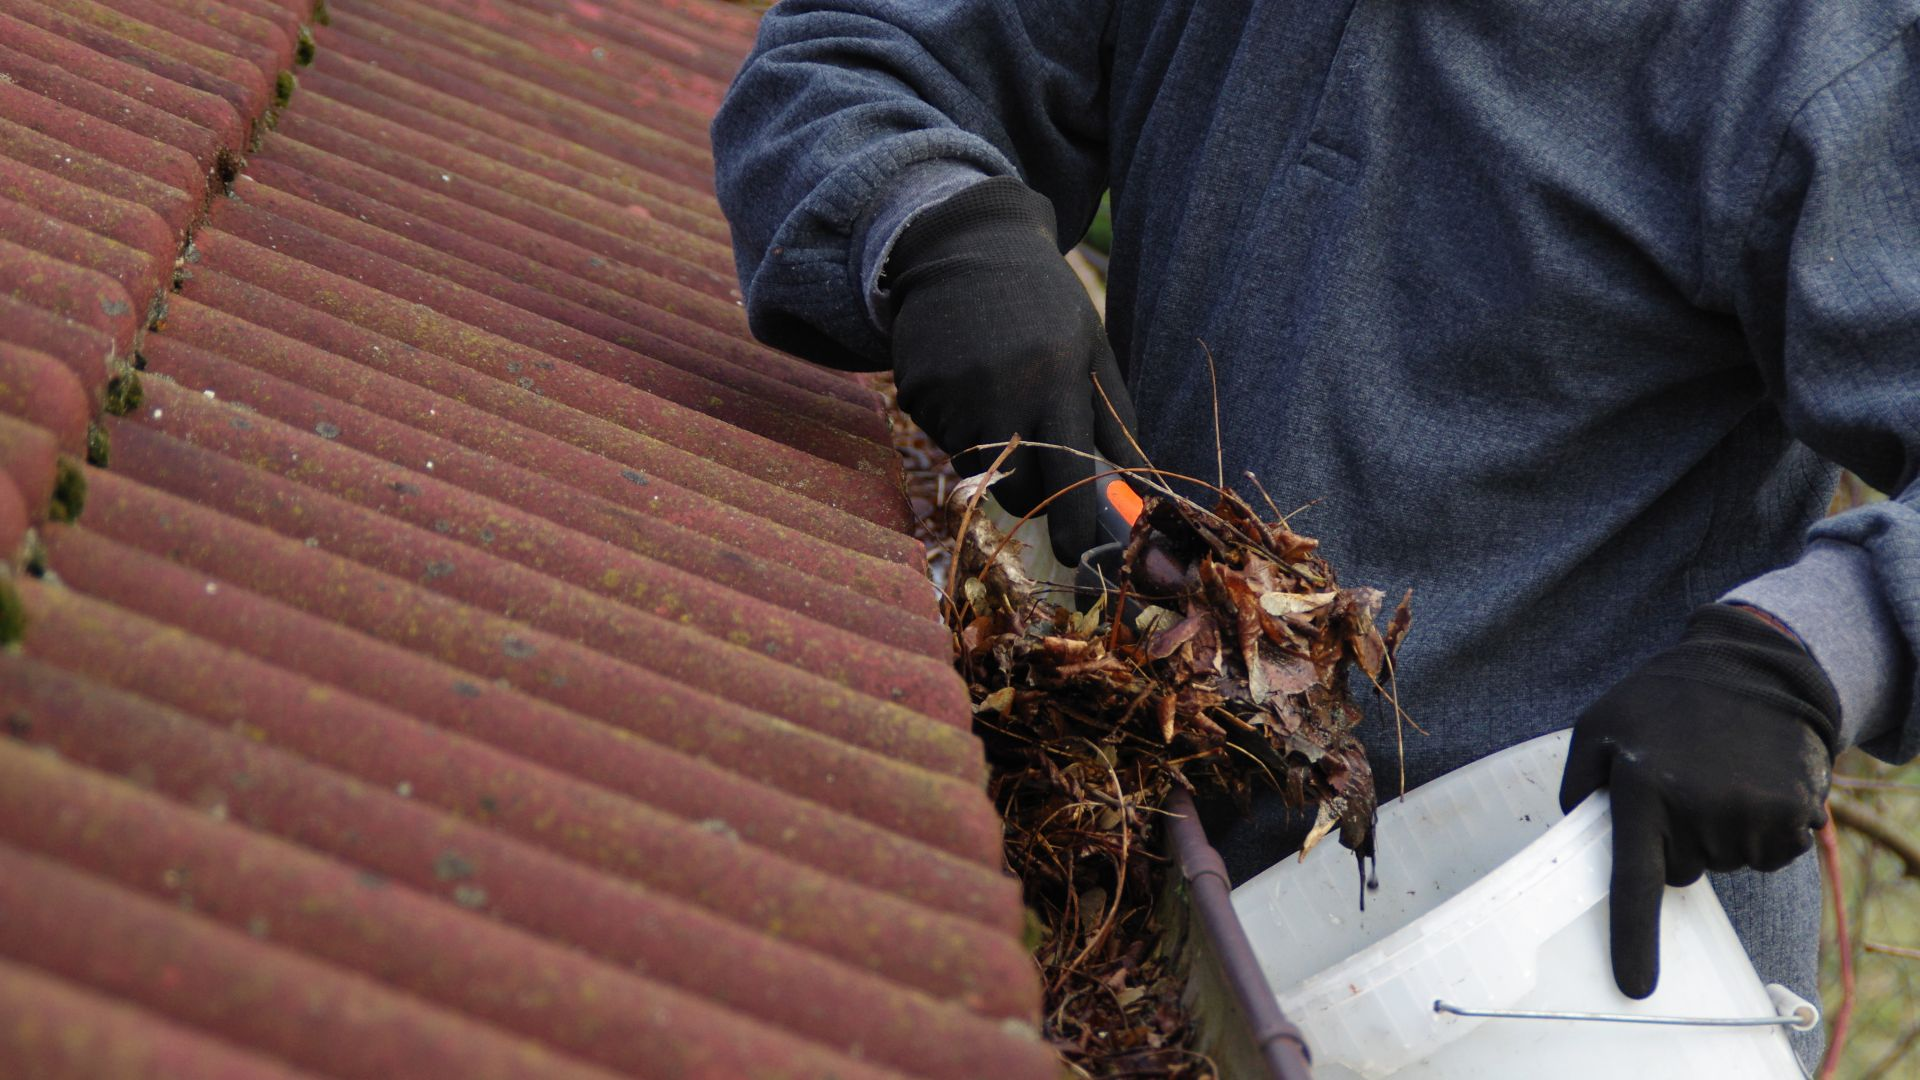 Gutter Cleaning Company Bristol